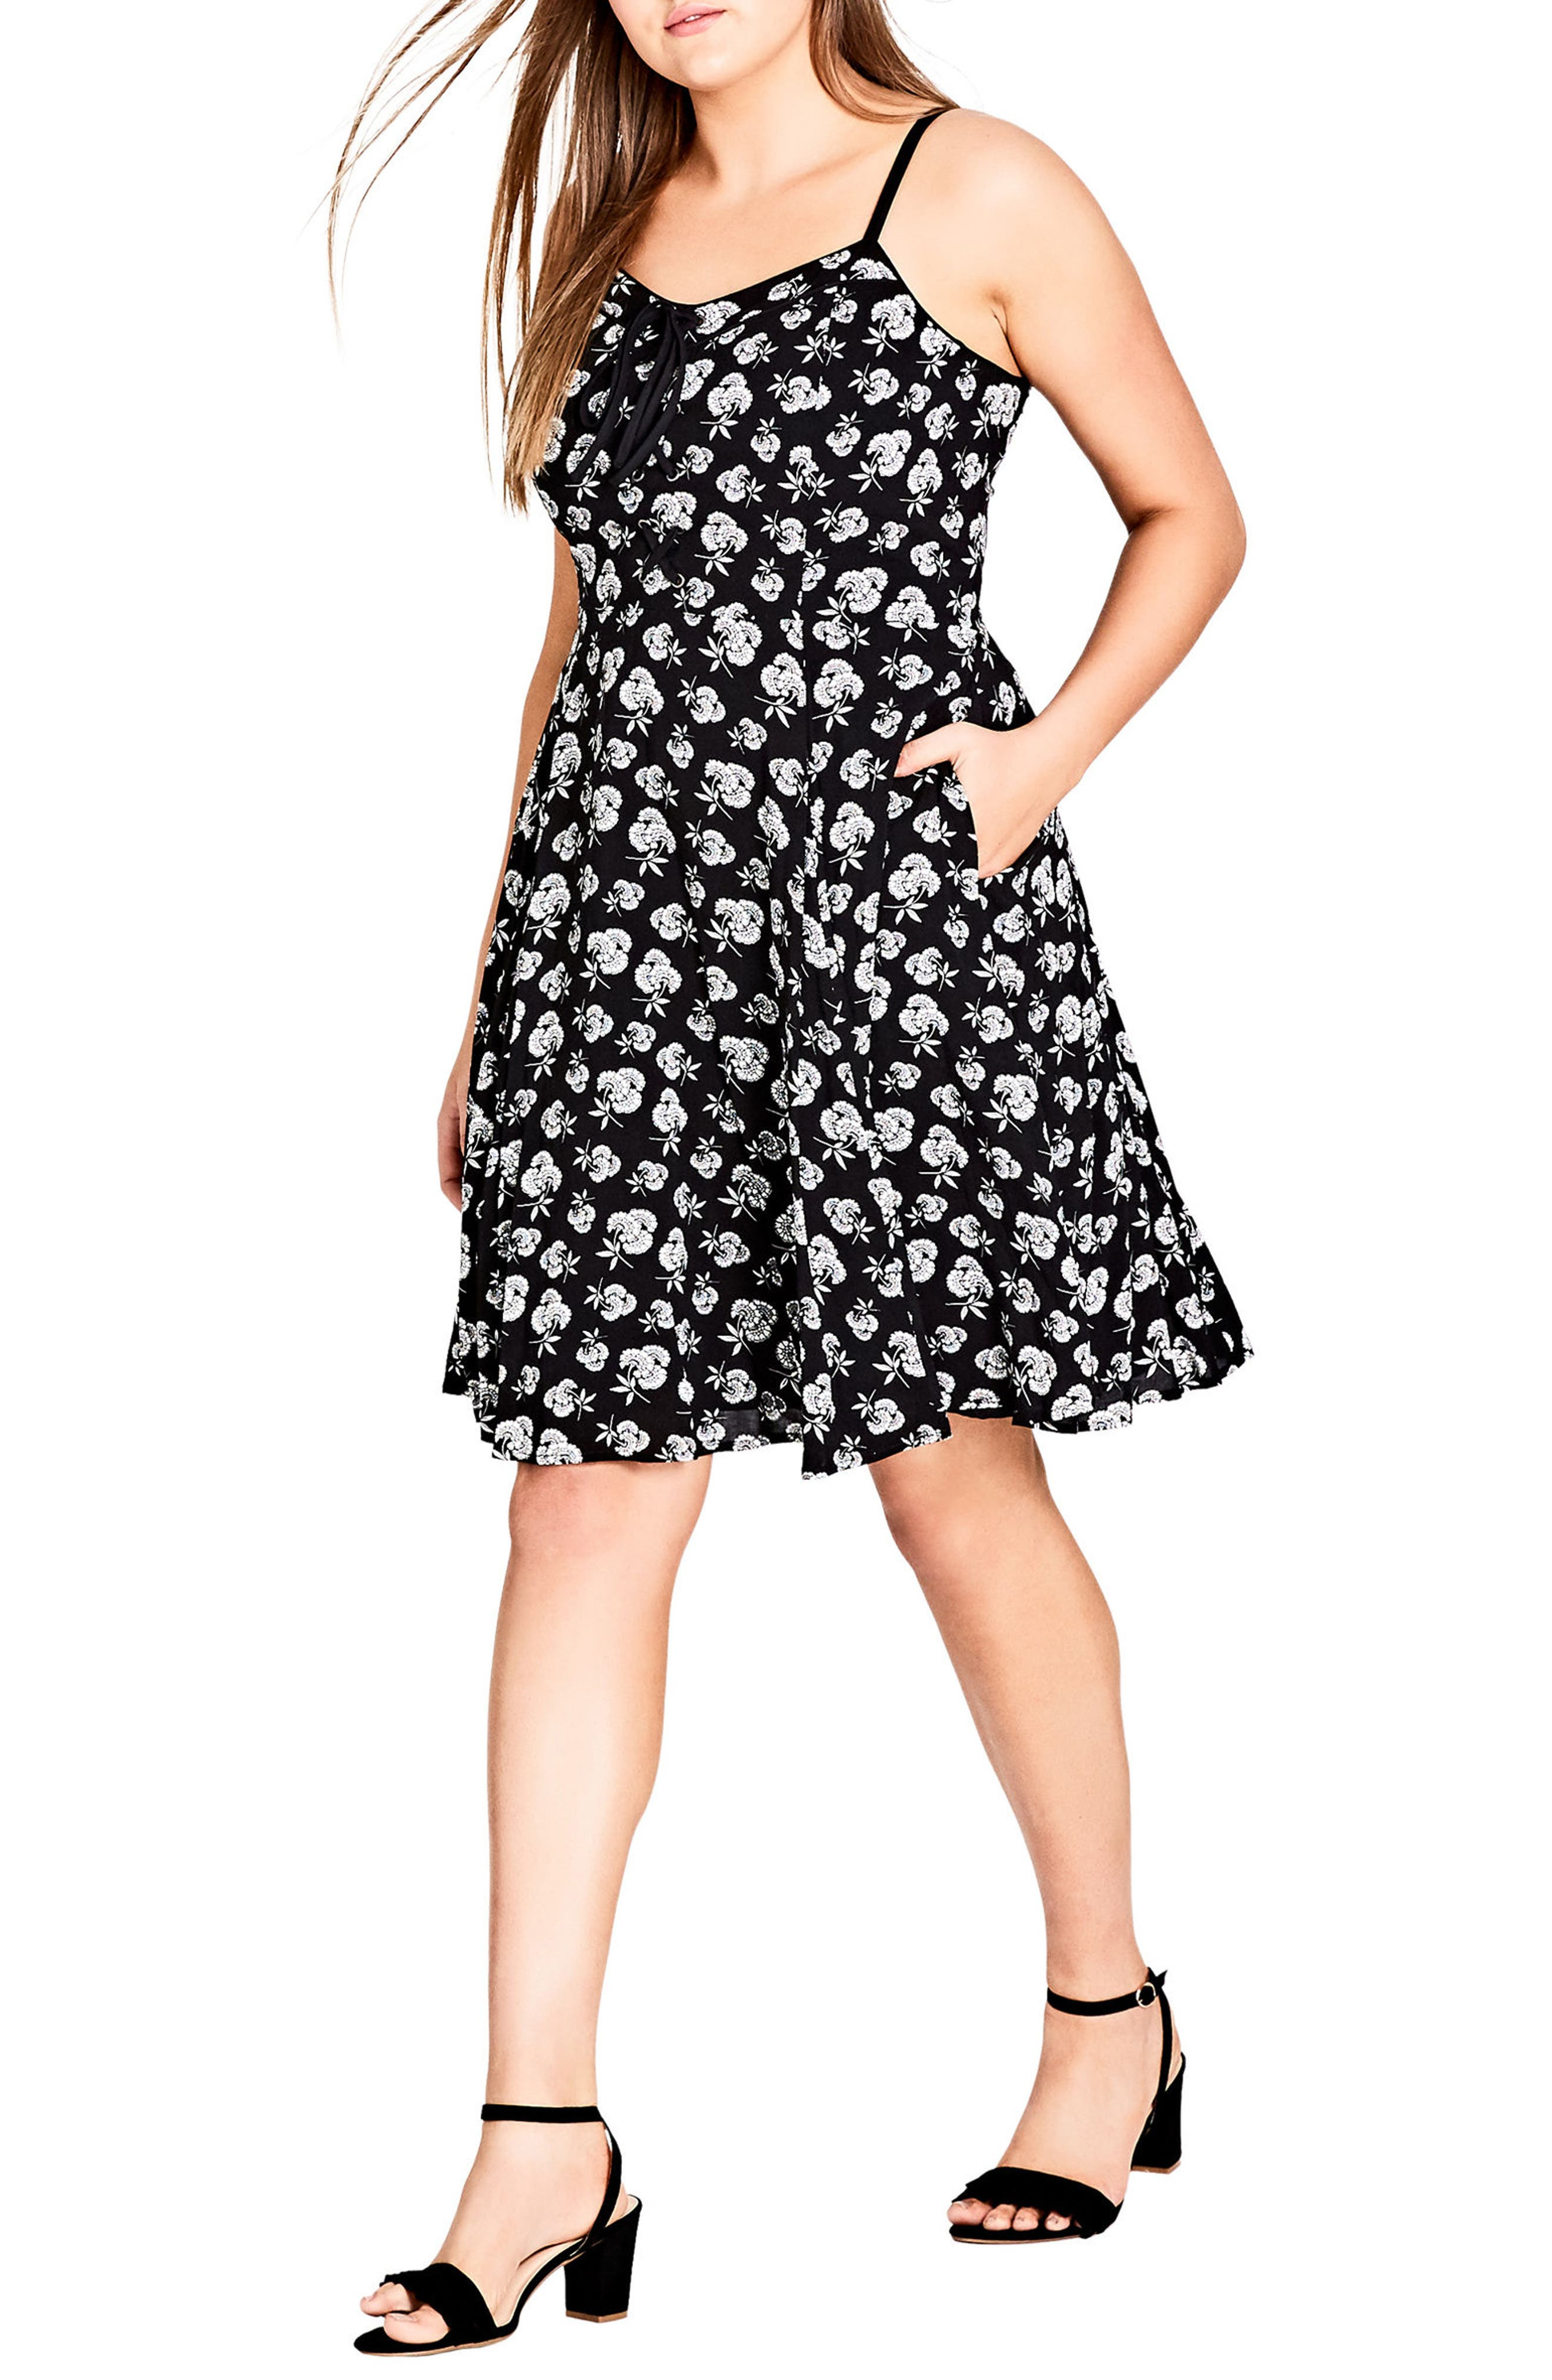 Deco Floral A-Line Dress,                         Main,                         color, Deco Floral